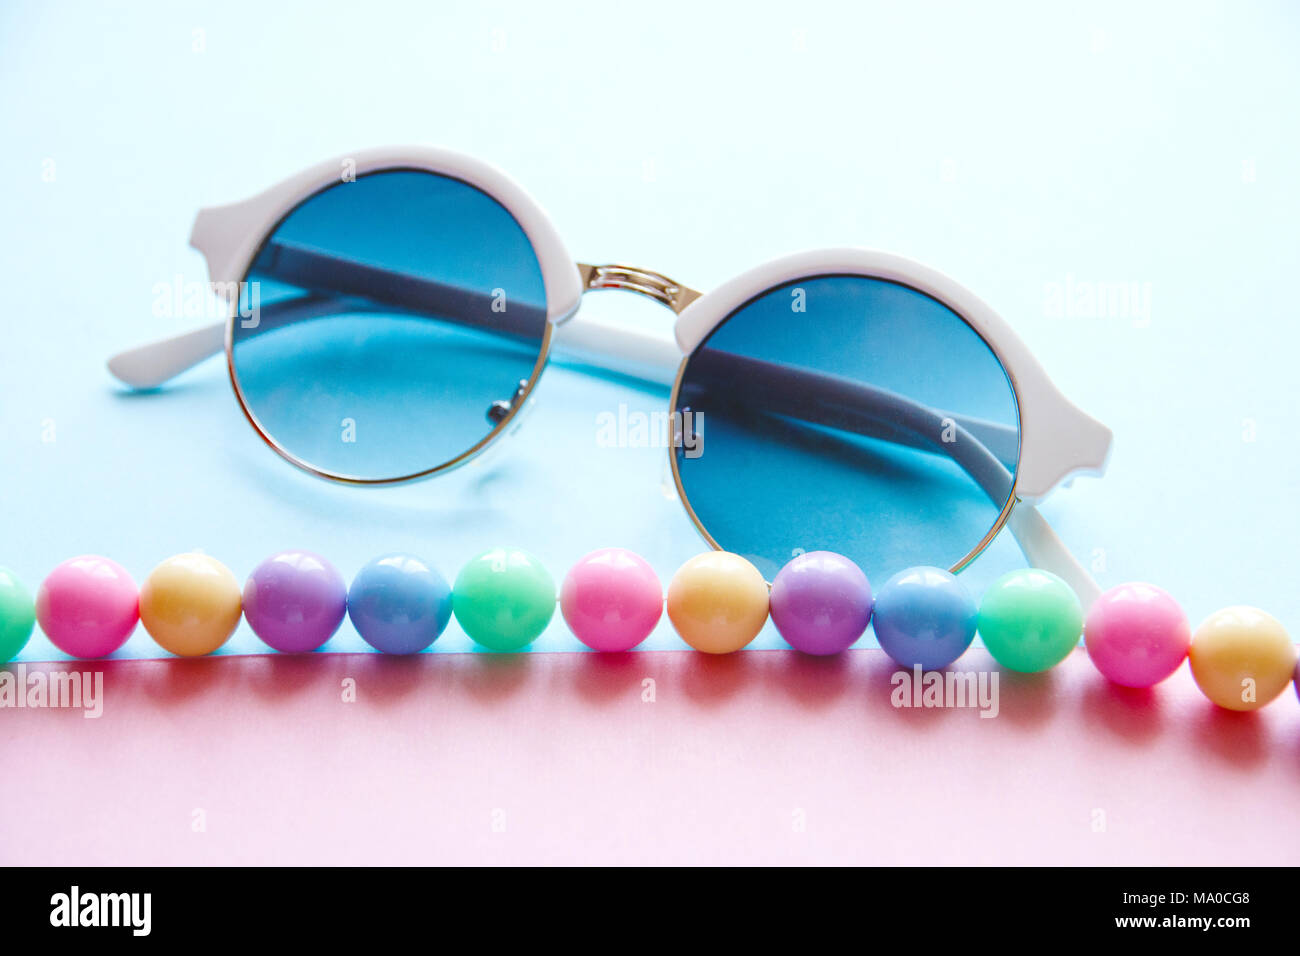 c007e0354 Original Creation Stock Photos & Original Creation Stock Images - Alamy